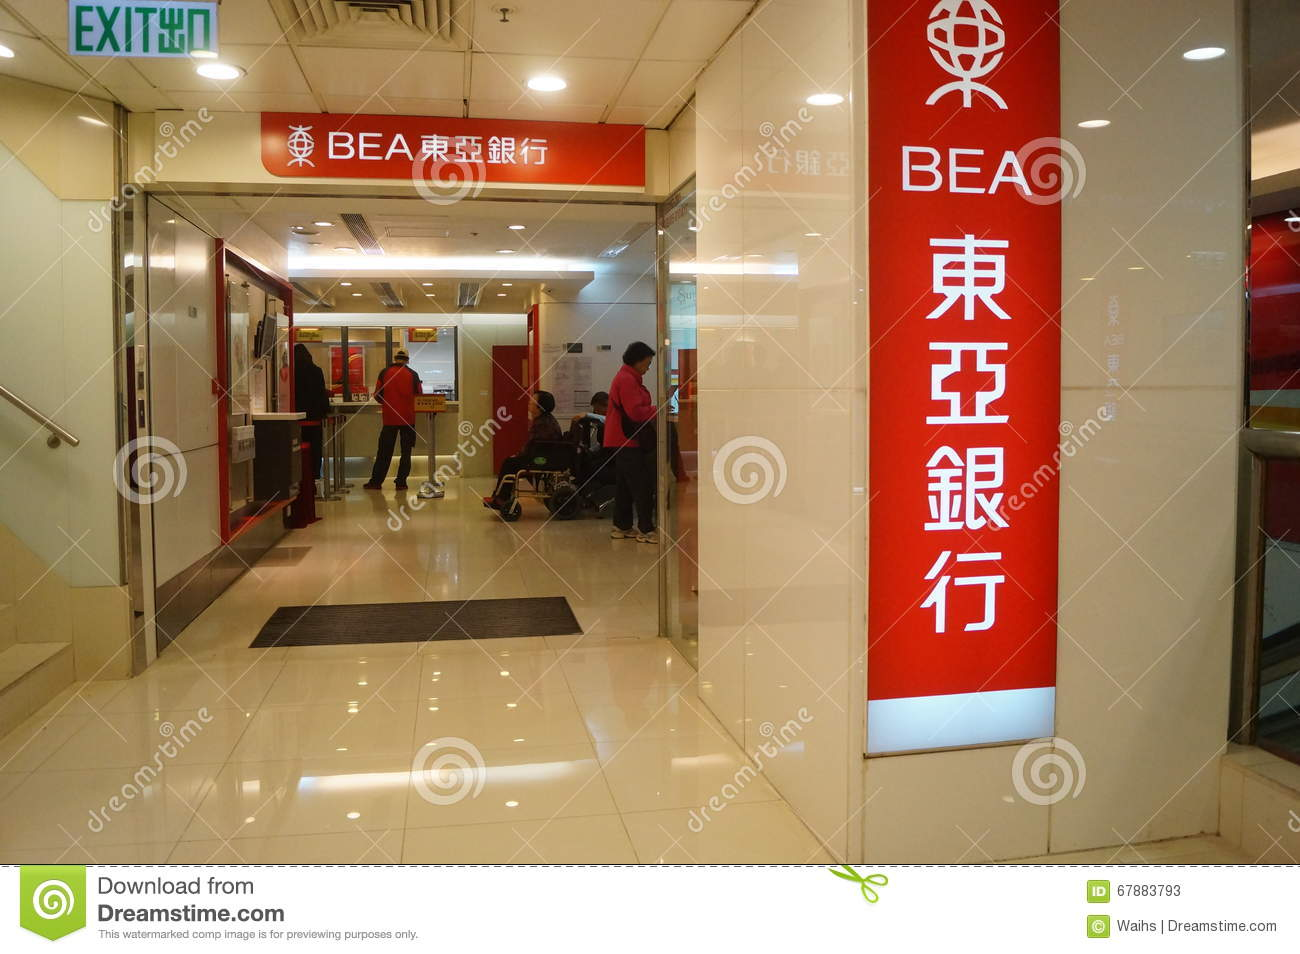 Hongkong, China: Bank of East Asia